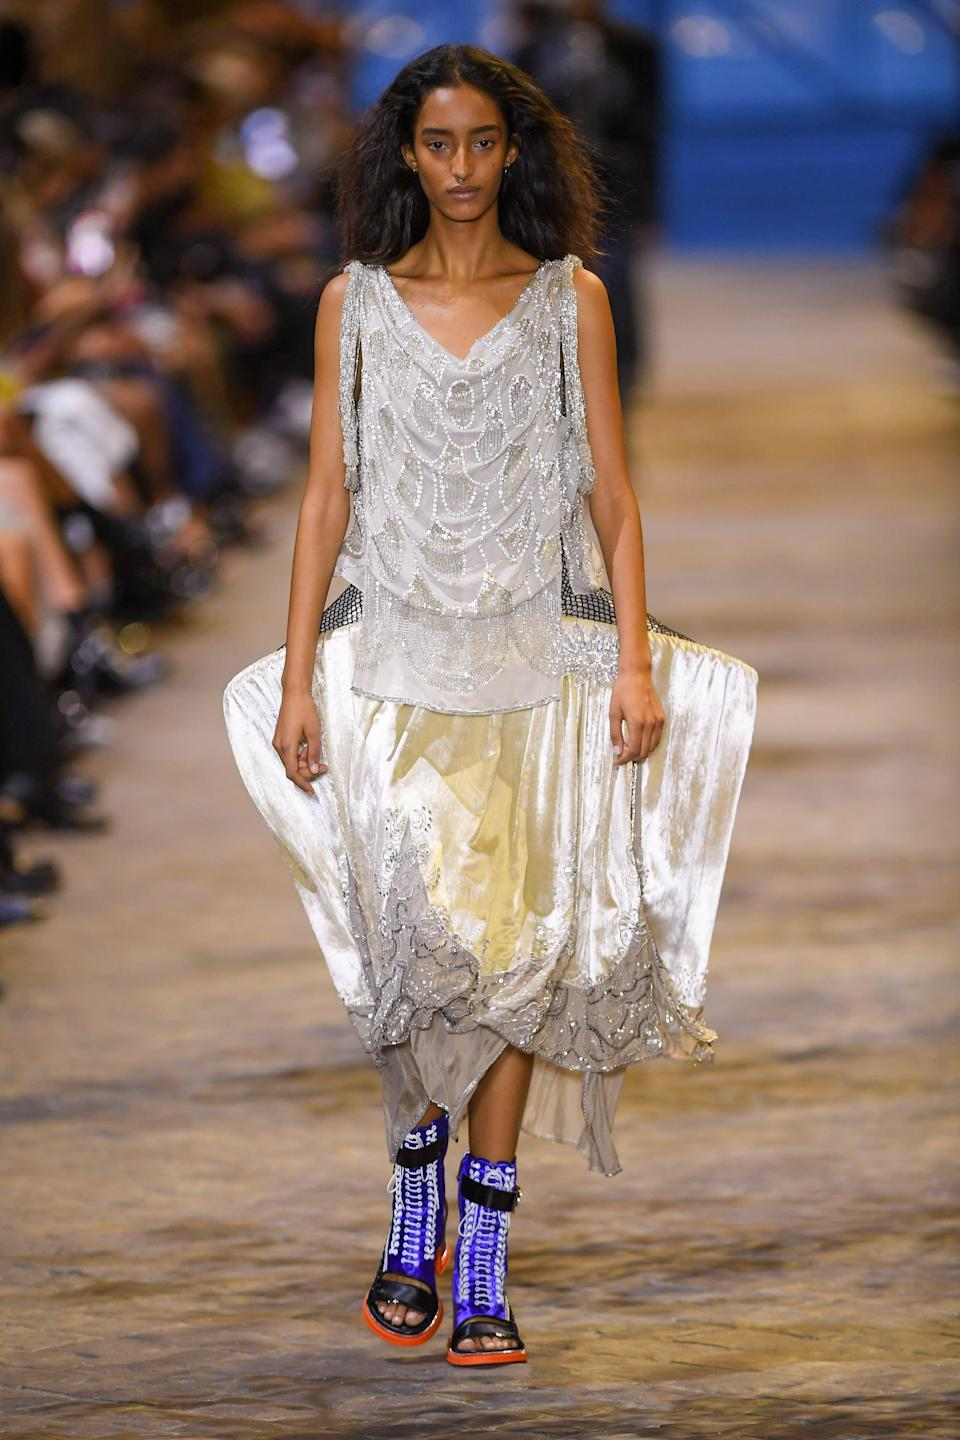 <p>Okay, let's finally address the silhouette. Now, I'm also thinking back to the structural elements at the Loewe Spring '22 show, and I must say, if the opportunity ever presented itself to wear this IRL… I kinda dig it?</p>